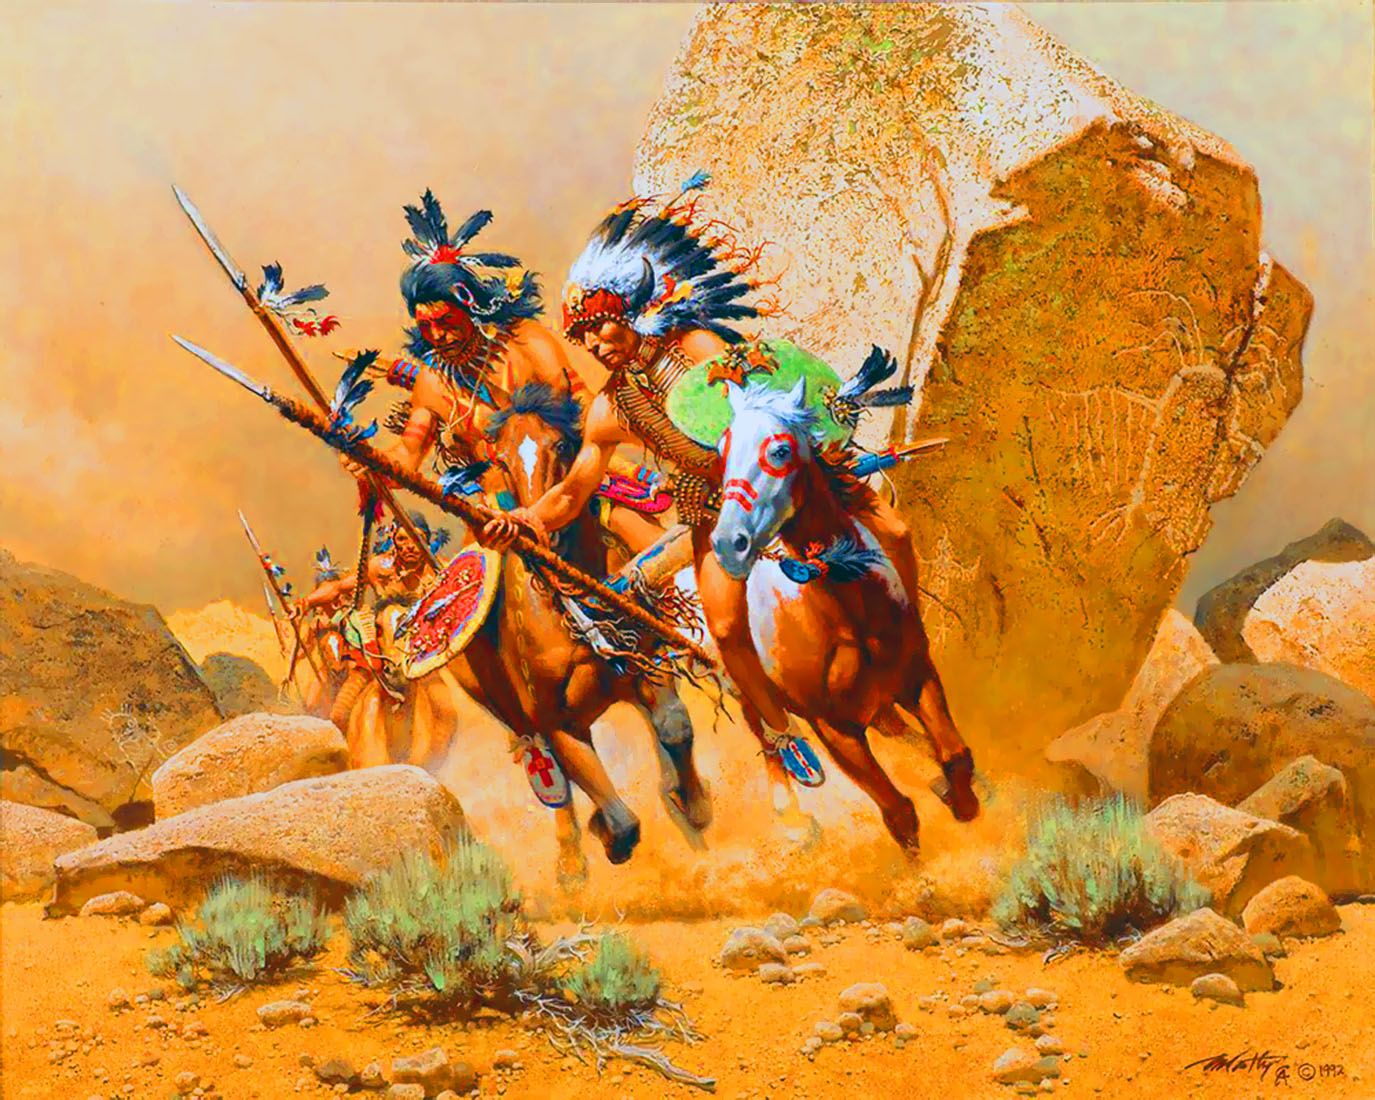 Dog Soldiers American Indian War Art